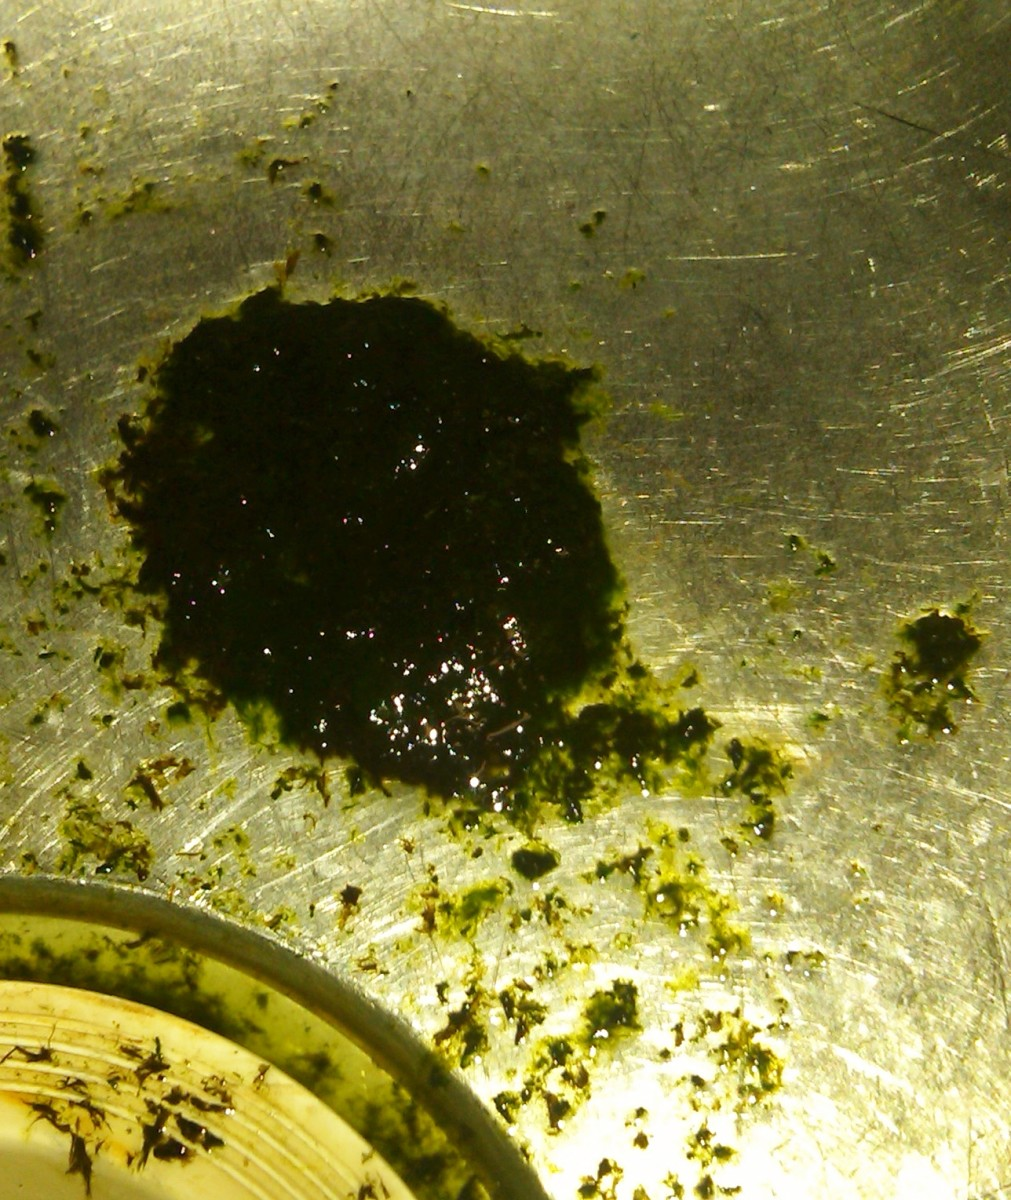 Here is the amount of algae I was able to scrape off of the screen from both sides. 9/9/12)